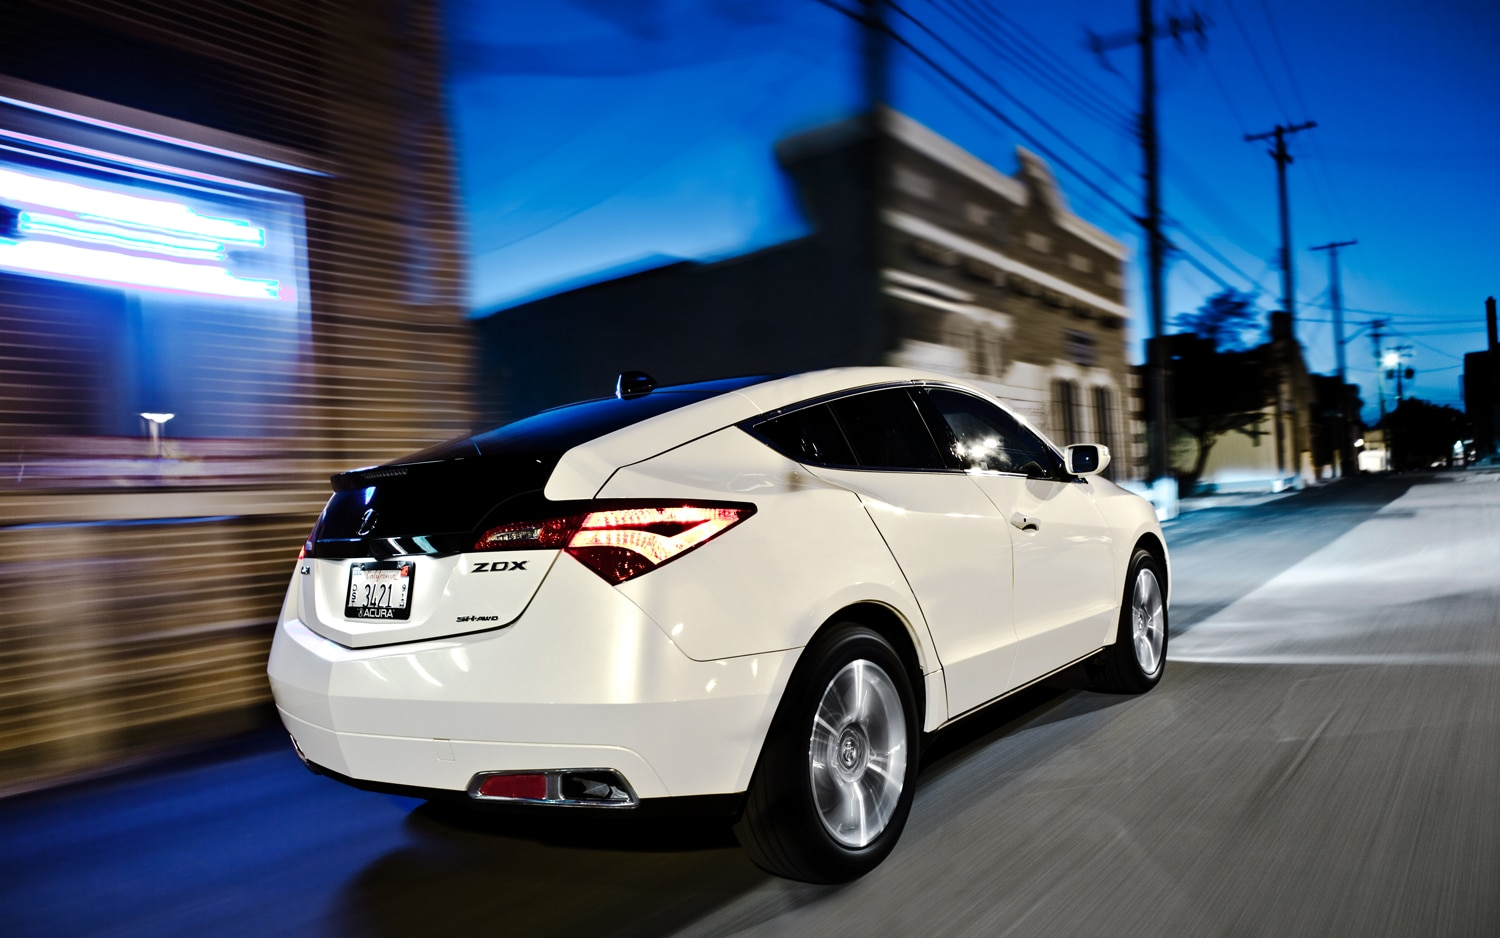 2010 Acura Zdx Rear Right View1